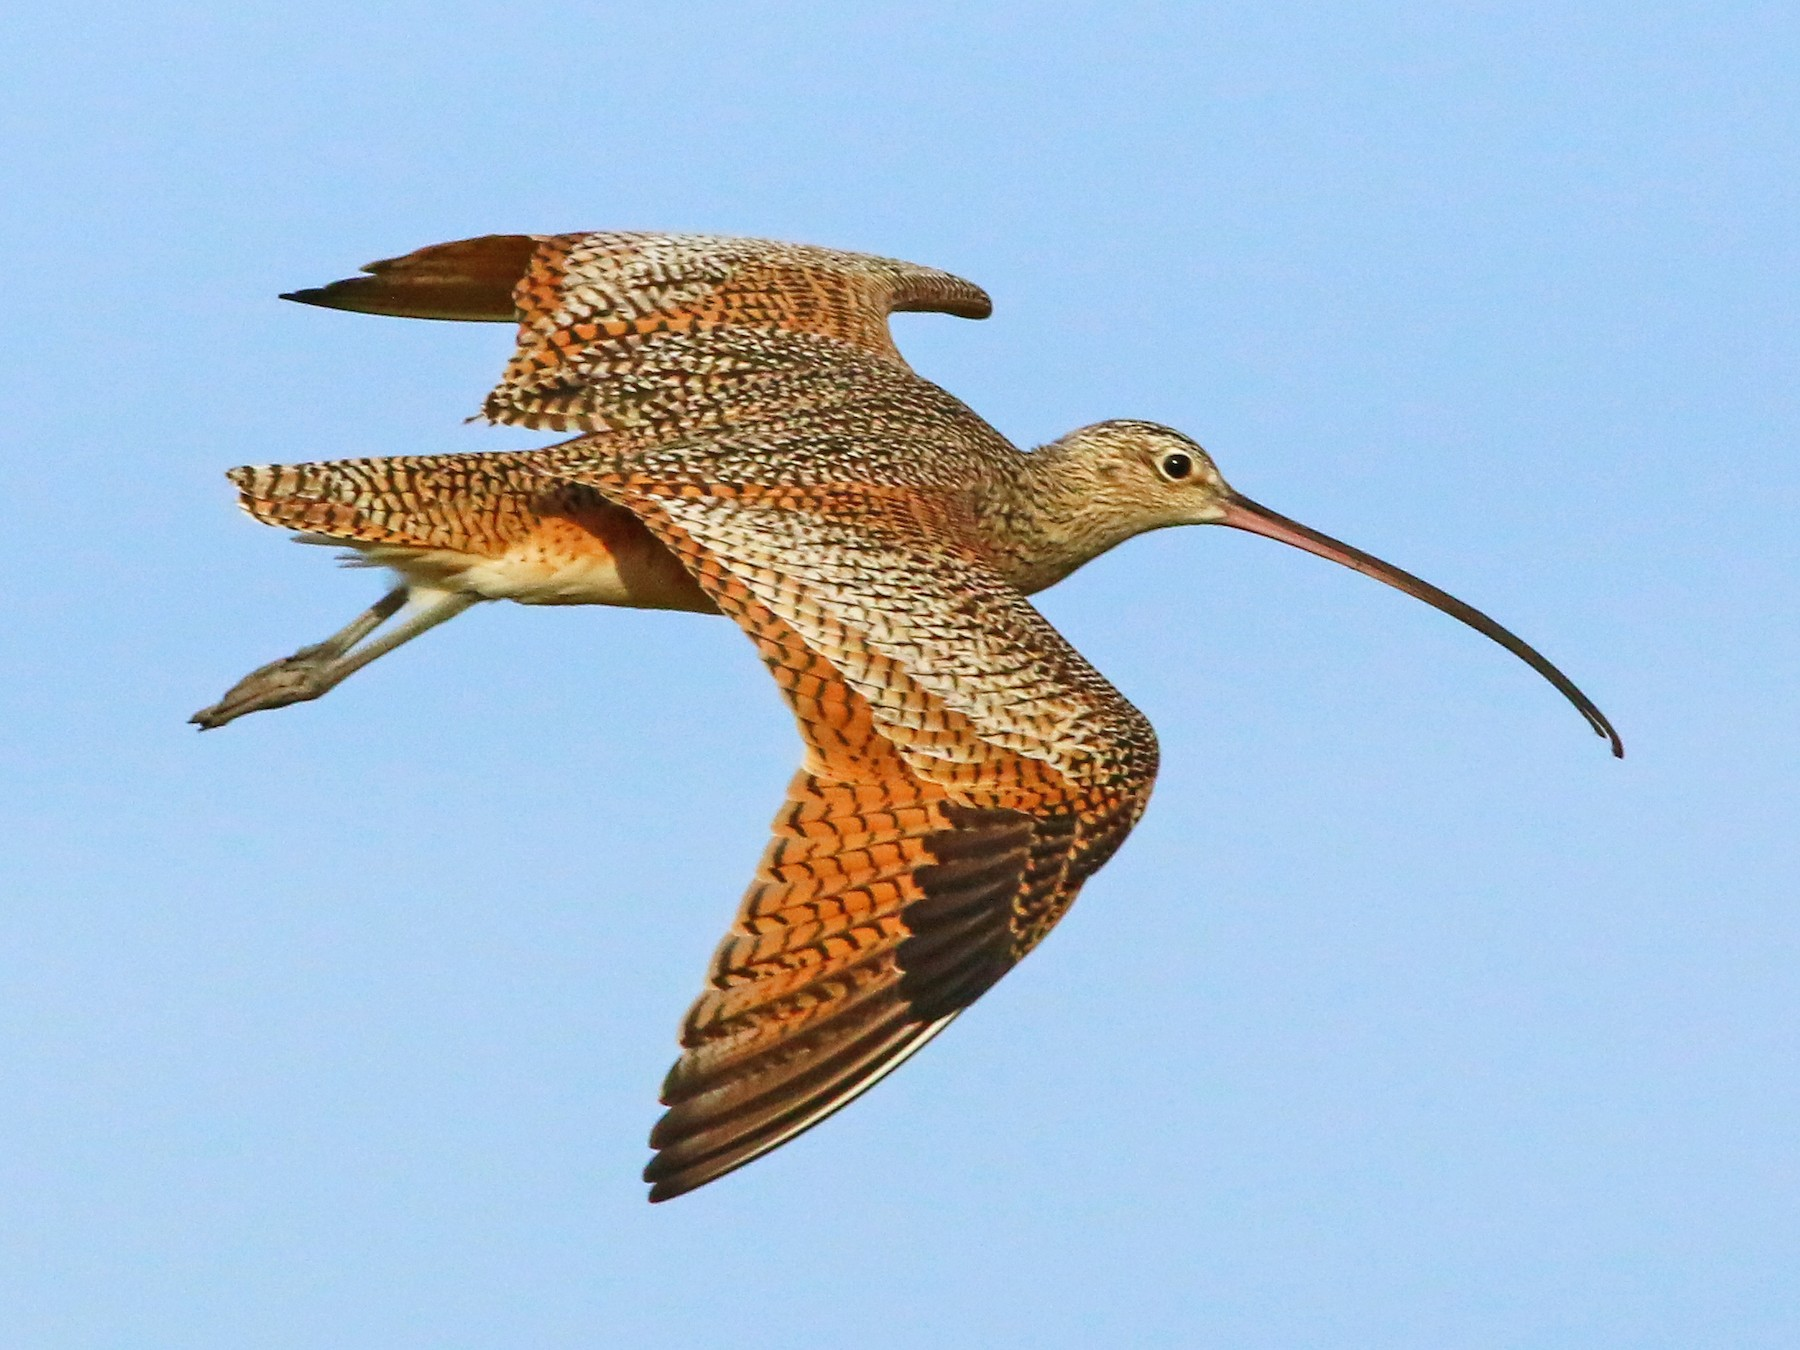 Long-billed Curlew - Chris McCreedy - no playbacks